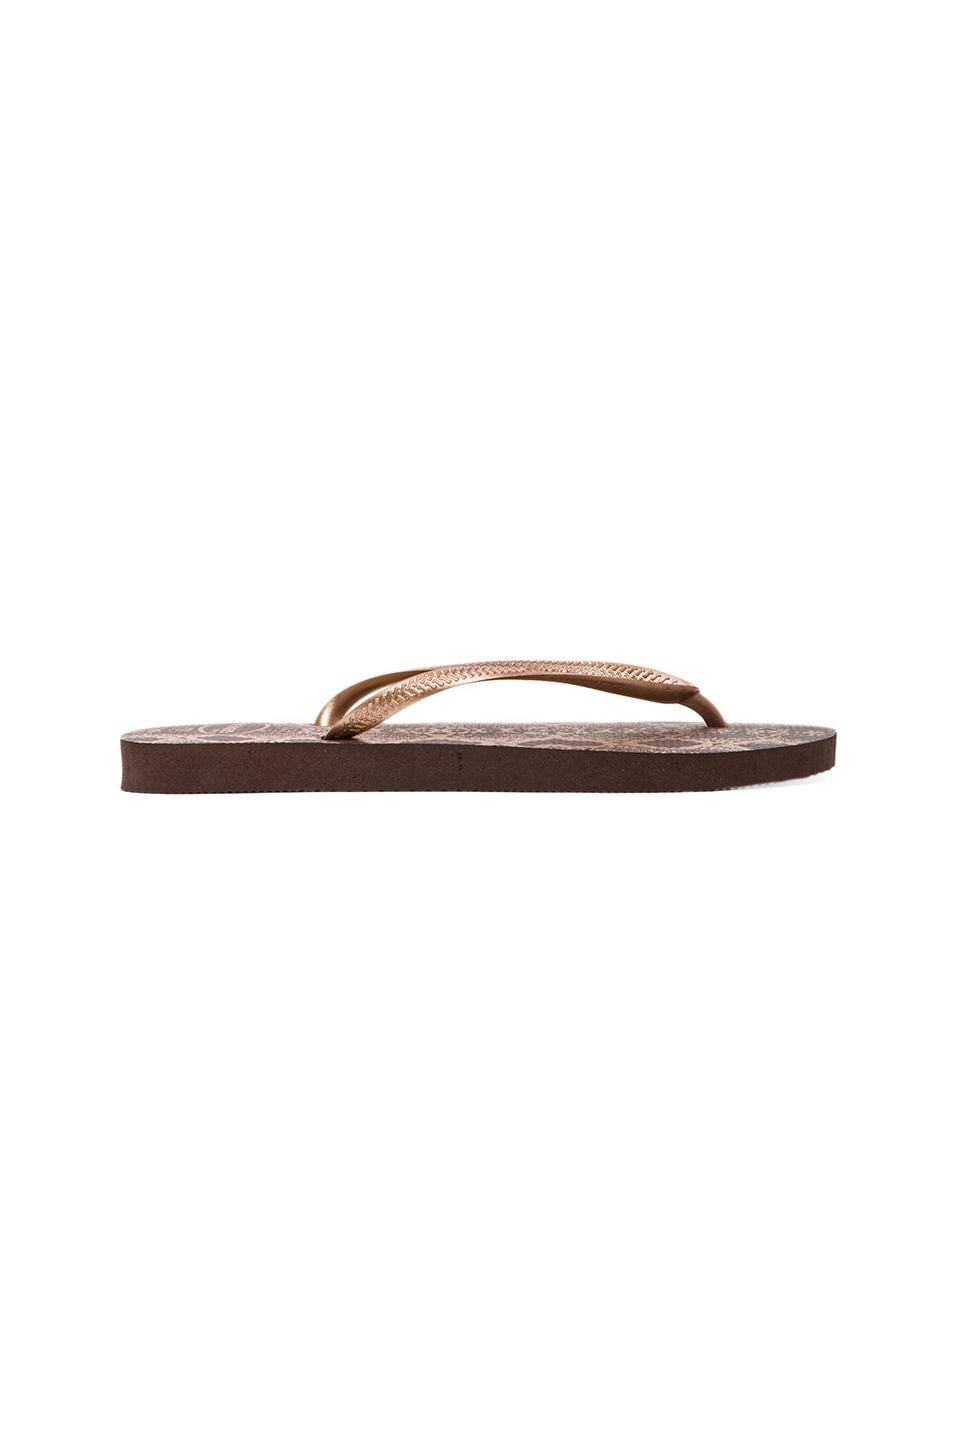 Havaianas Slim Animals Flip Flop in Dark Brown/Golden Sun